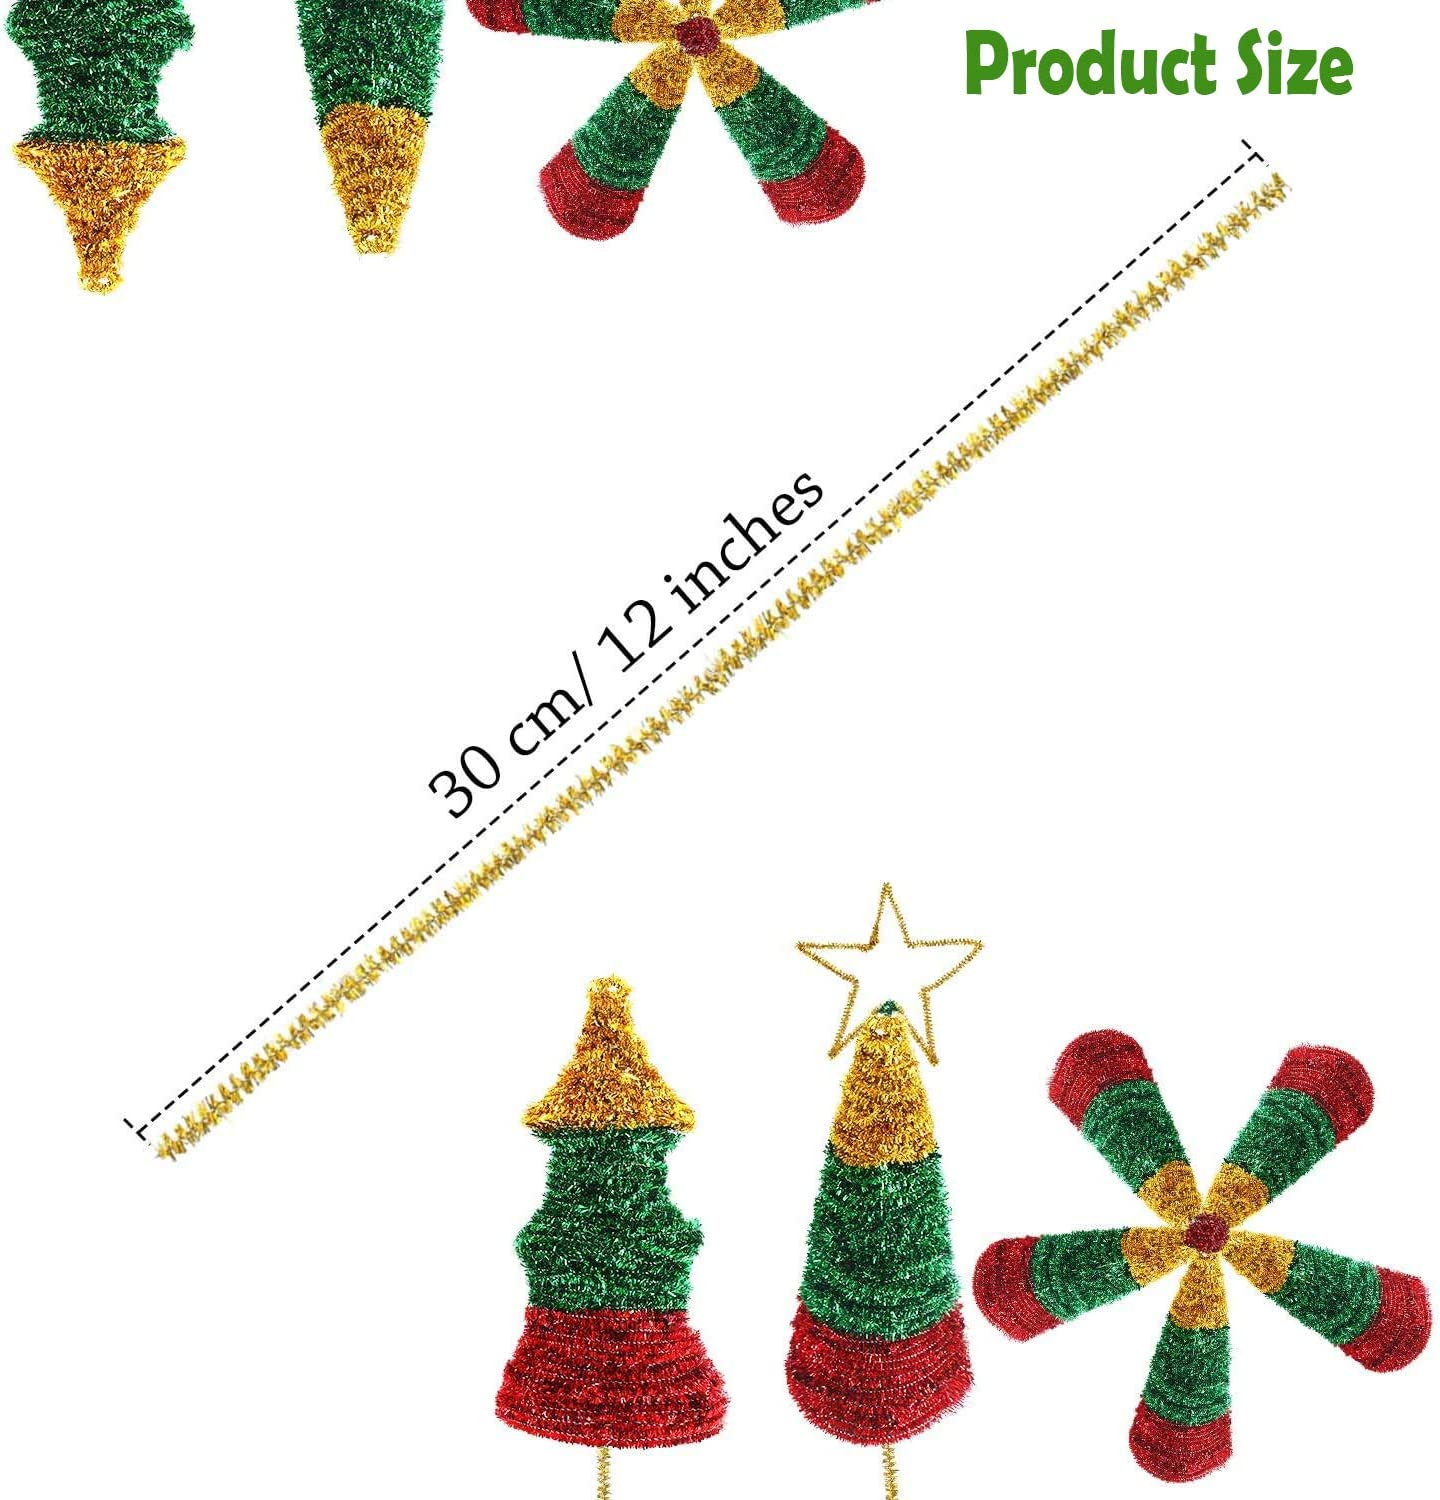 Total 400 PCS Silver Glitter Chenille Stems Green Red 12 Inches Craft Pipe Cleaners Creative Arts Chenille Stems for DIY Craft Christmas Decoration Gold